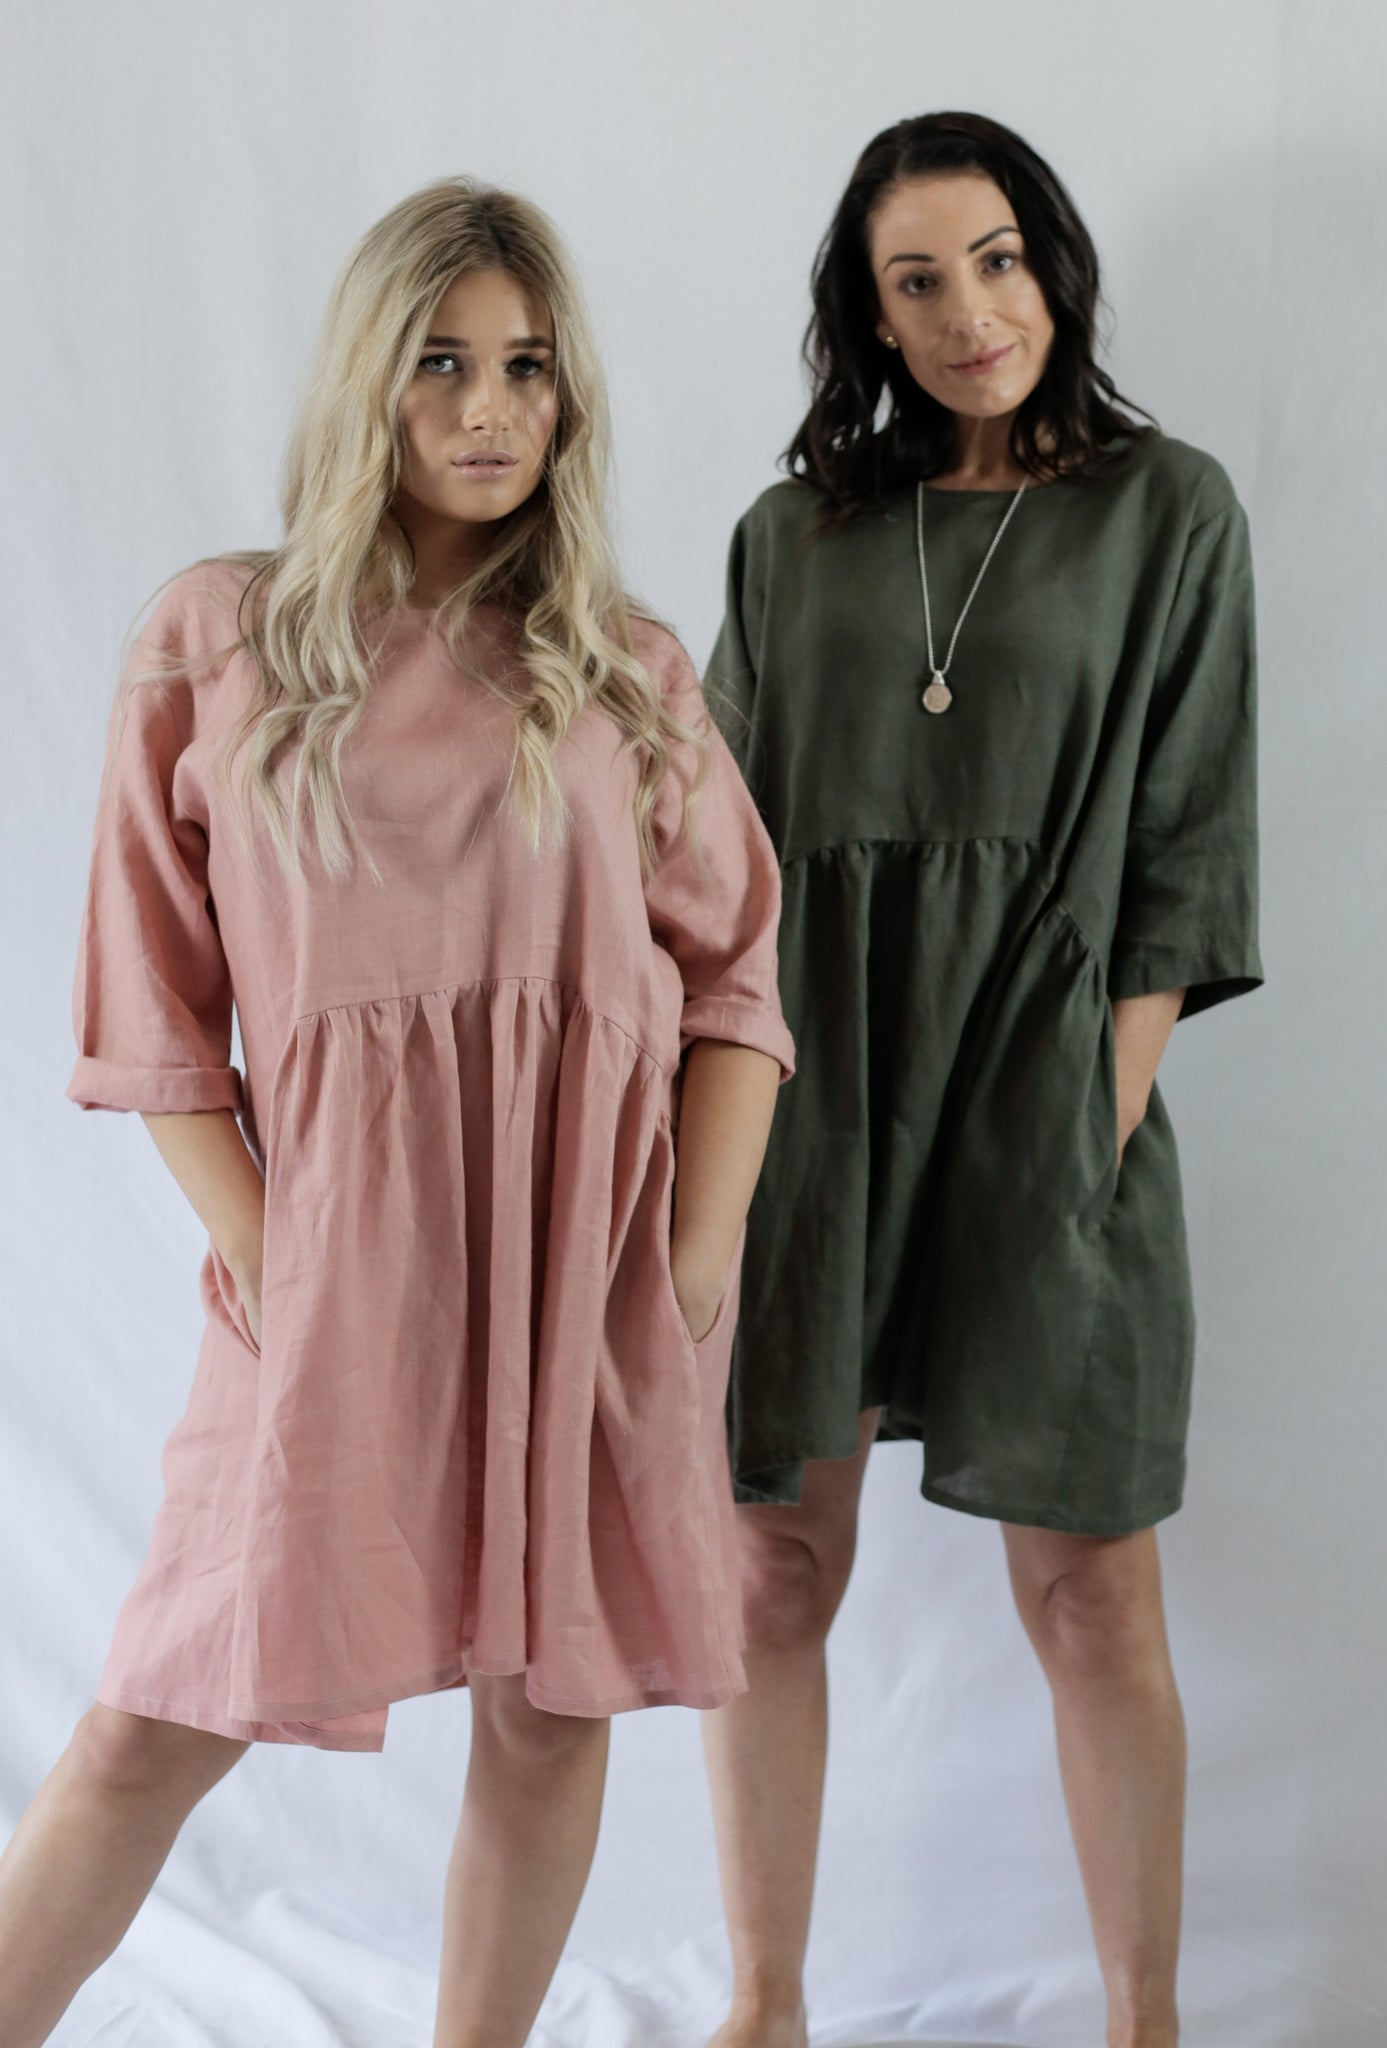 CHARLIE DRESS - bambu road - linen clothing - comfortable chic - lifestyle collection - australian resort wear - australian brand clothing - coastal fashion